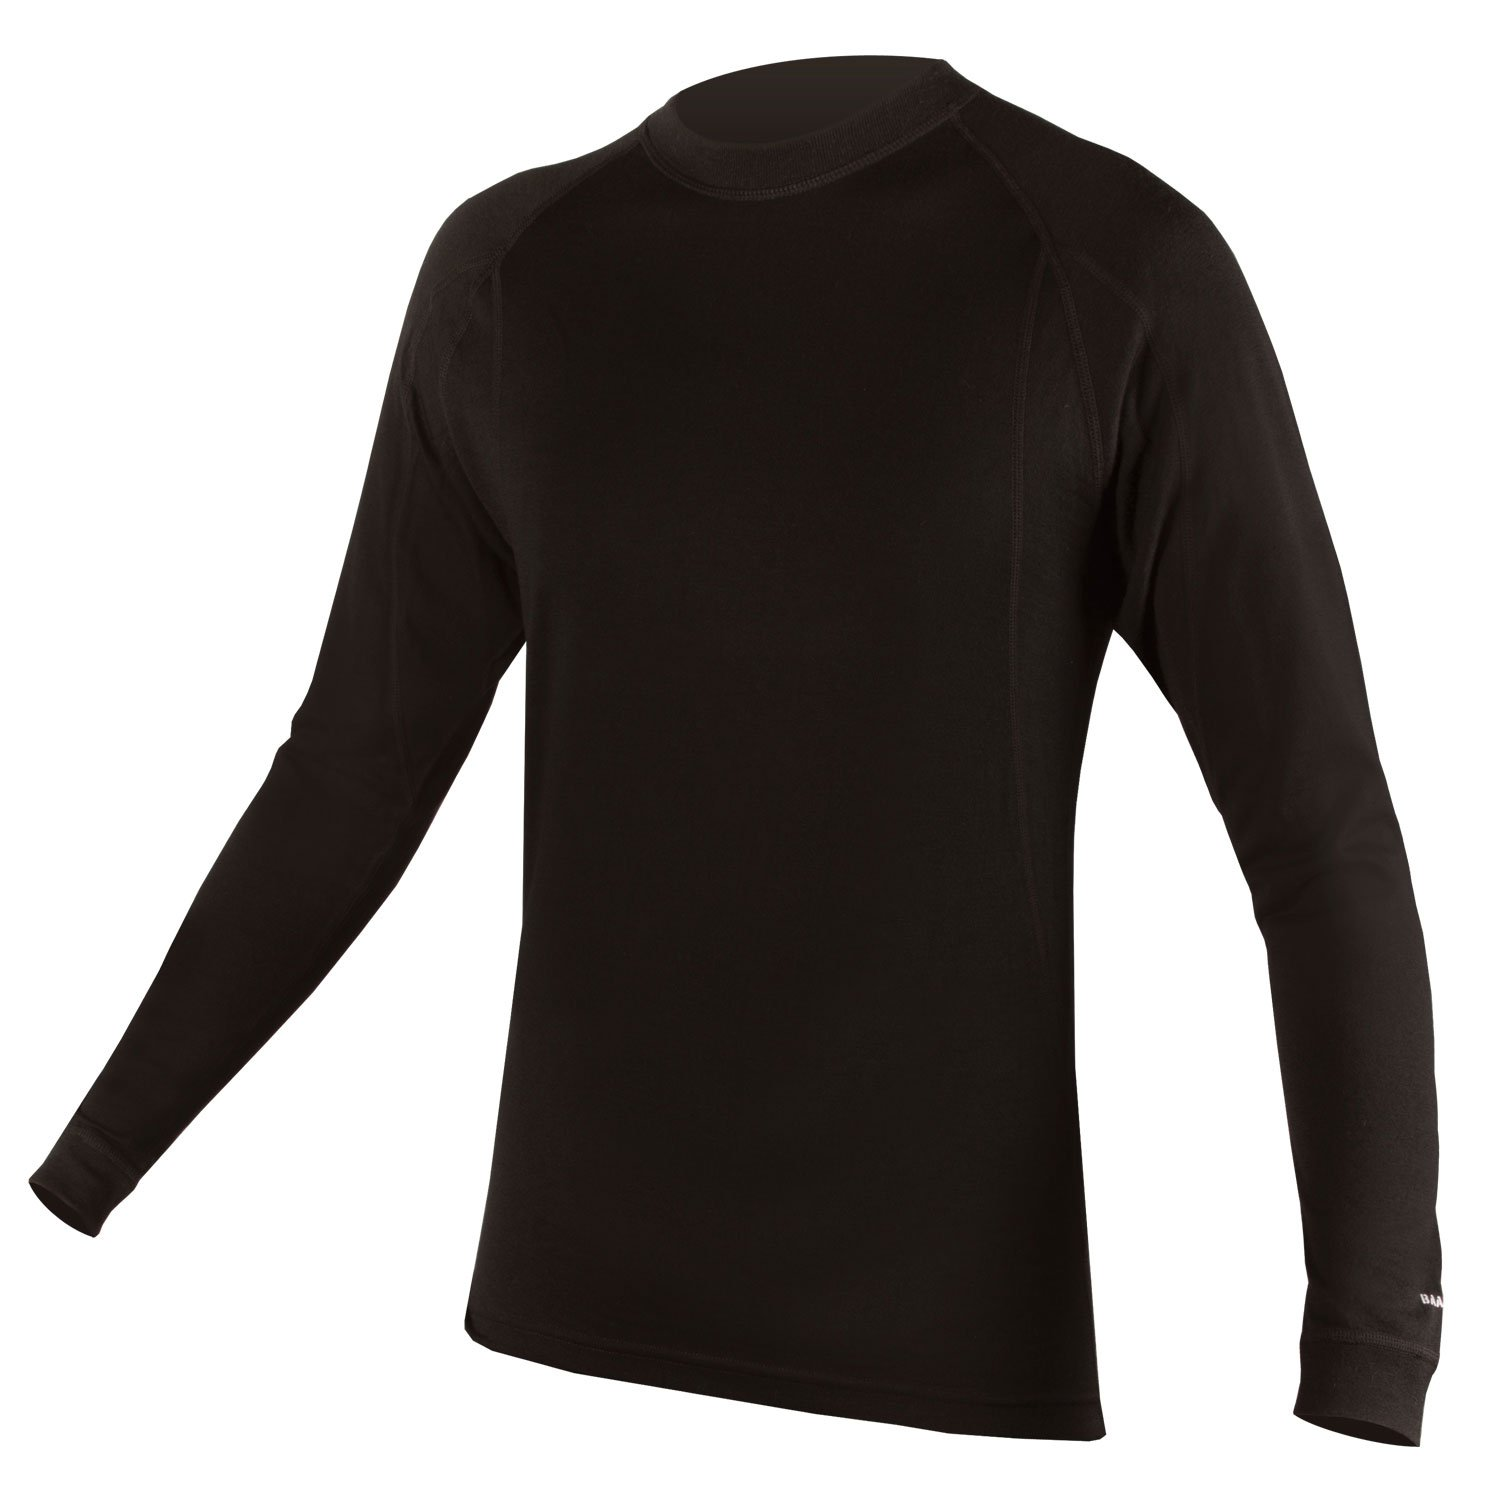 Endura BaaBaa Merino LS Baselayer | Undertøj og svedtøj